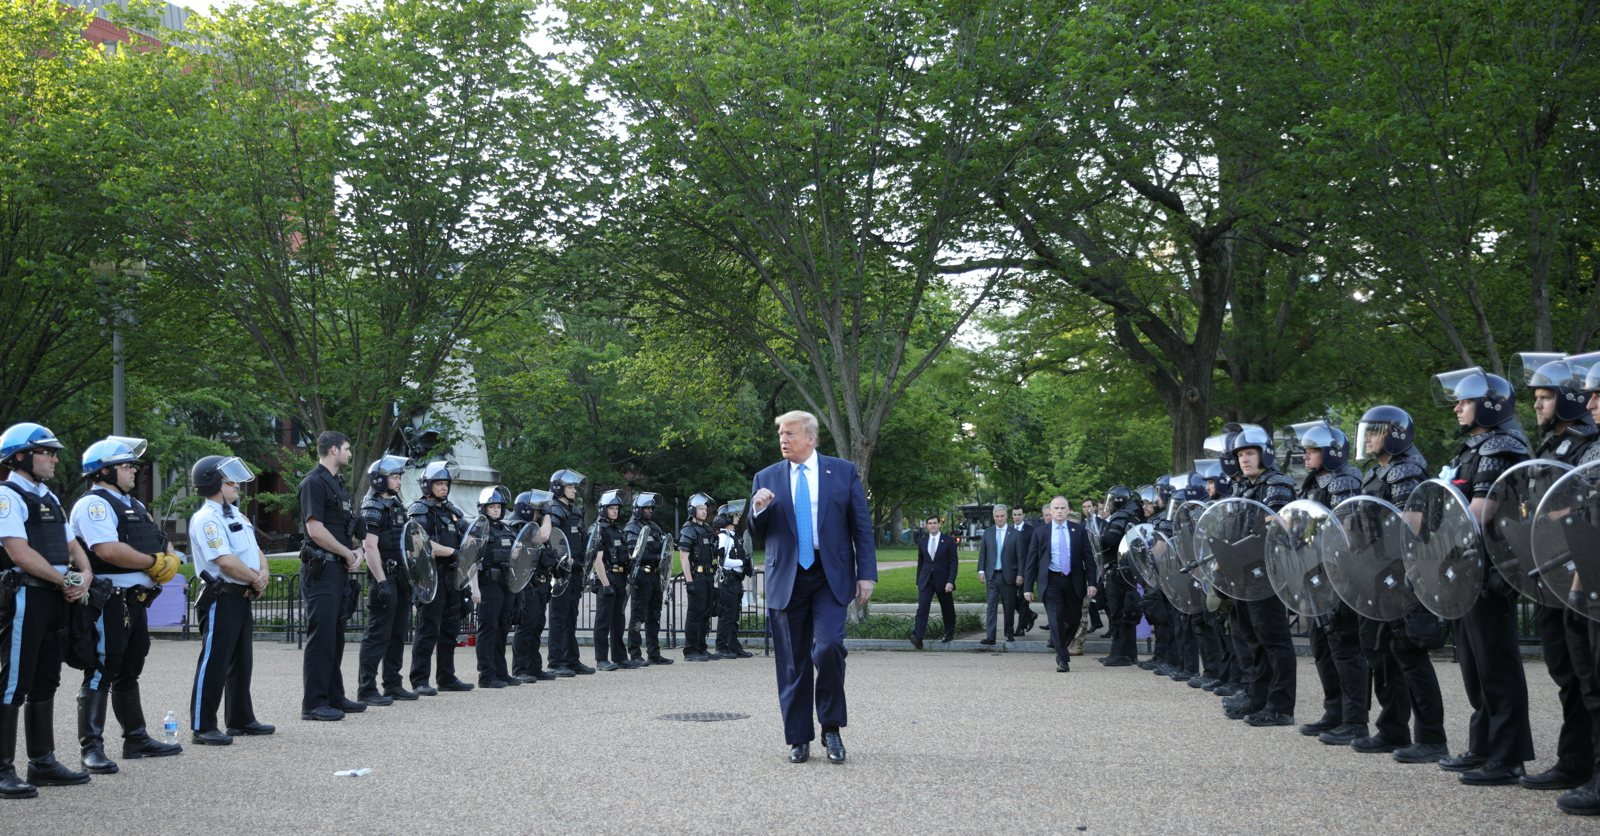 Donald Trump walking past riot police in Lafayette Park